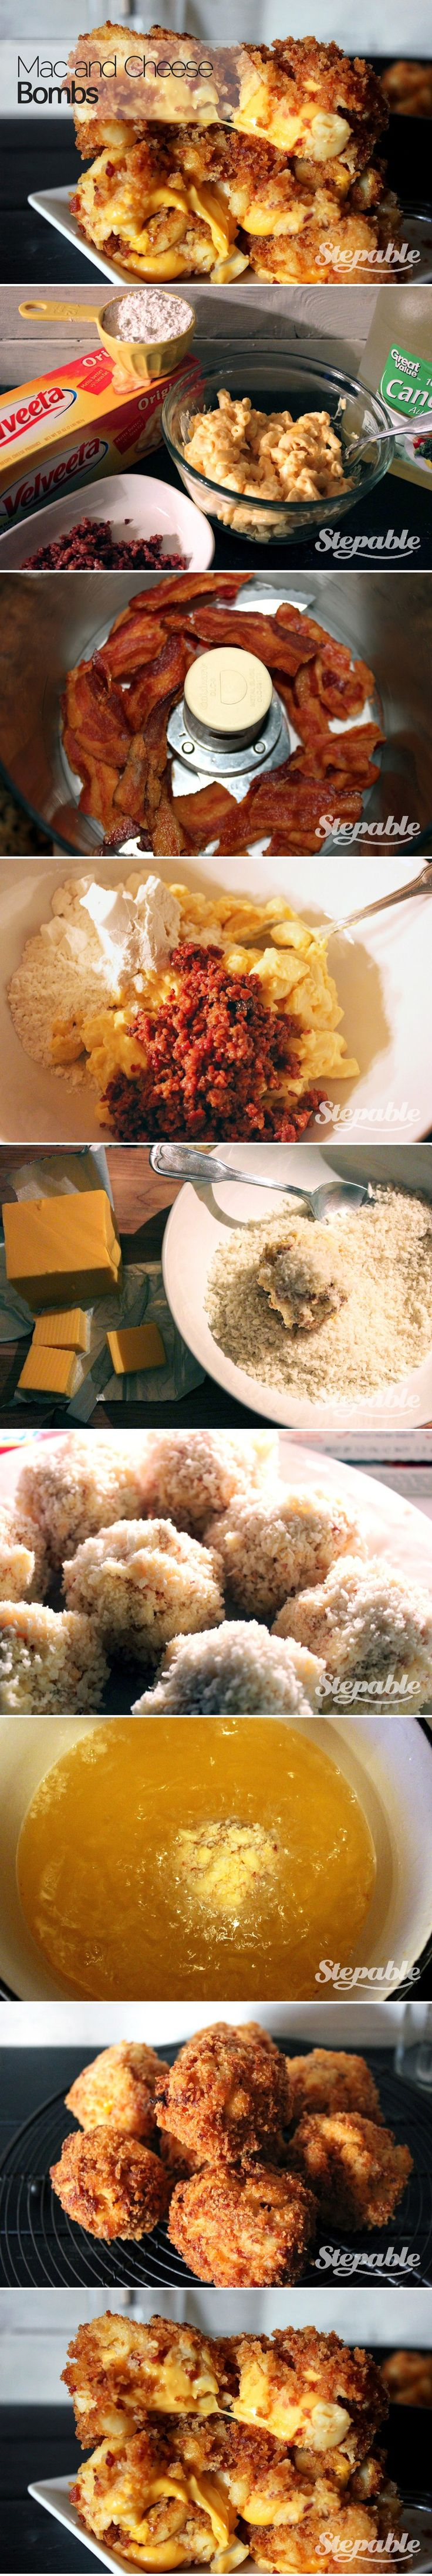 Turn Mac & Cheese into an appetizer with these easy step-by-step instructions. Perfect for game day or your Super Bowl party @Stepable #superbowl #recipes #appetizers